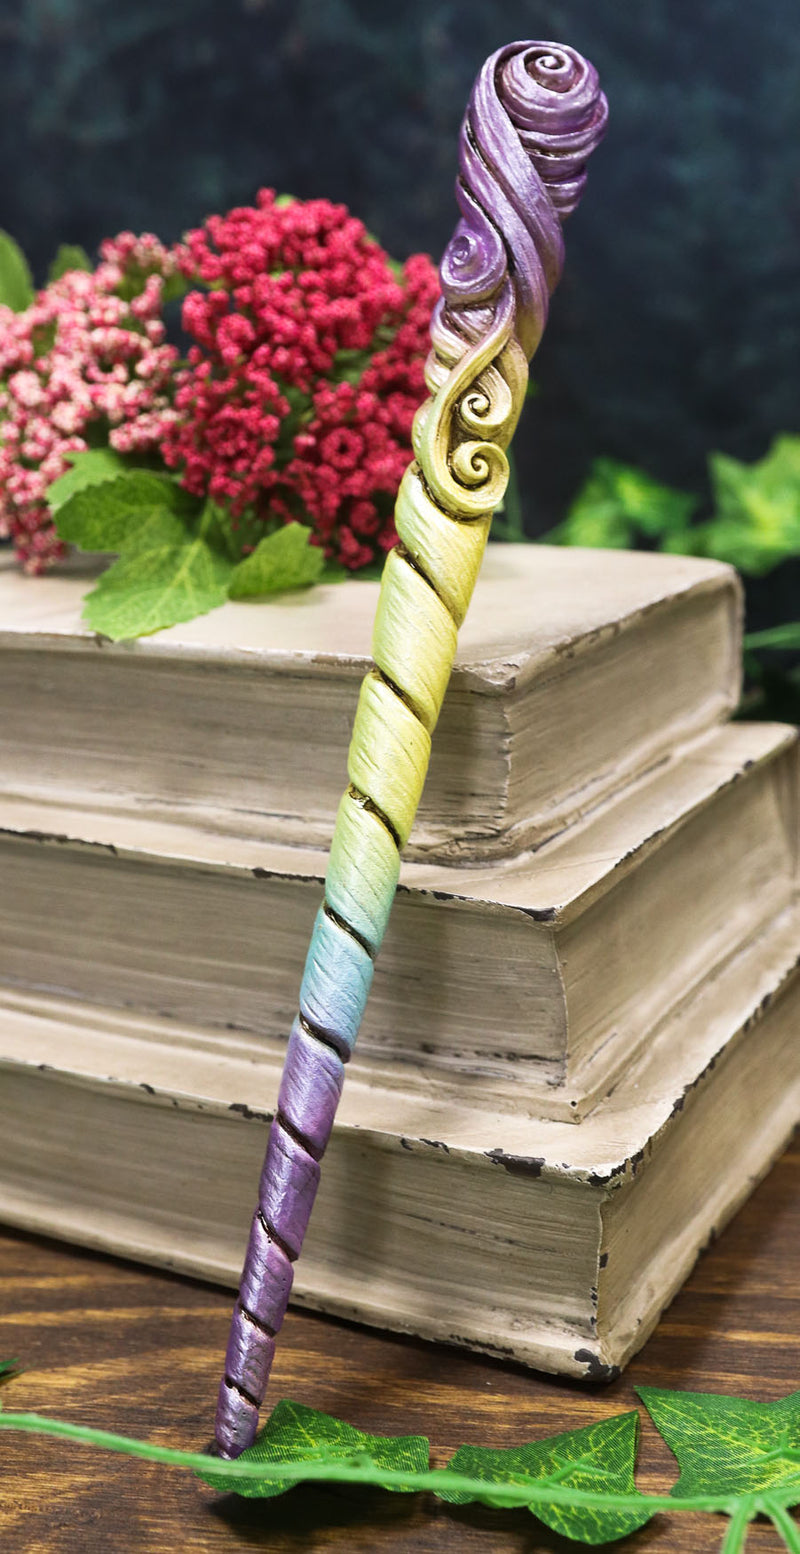 Witches Wizards Fantasy Cosplay Rainbow Unicorn Horn Magic Wand Prop Accessory